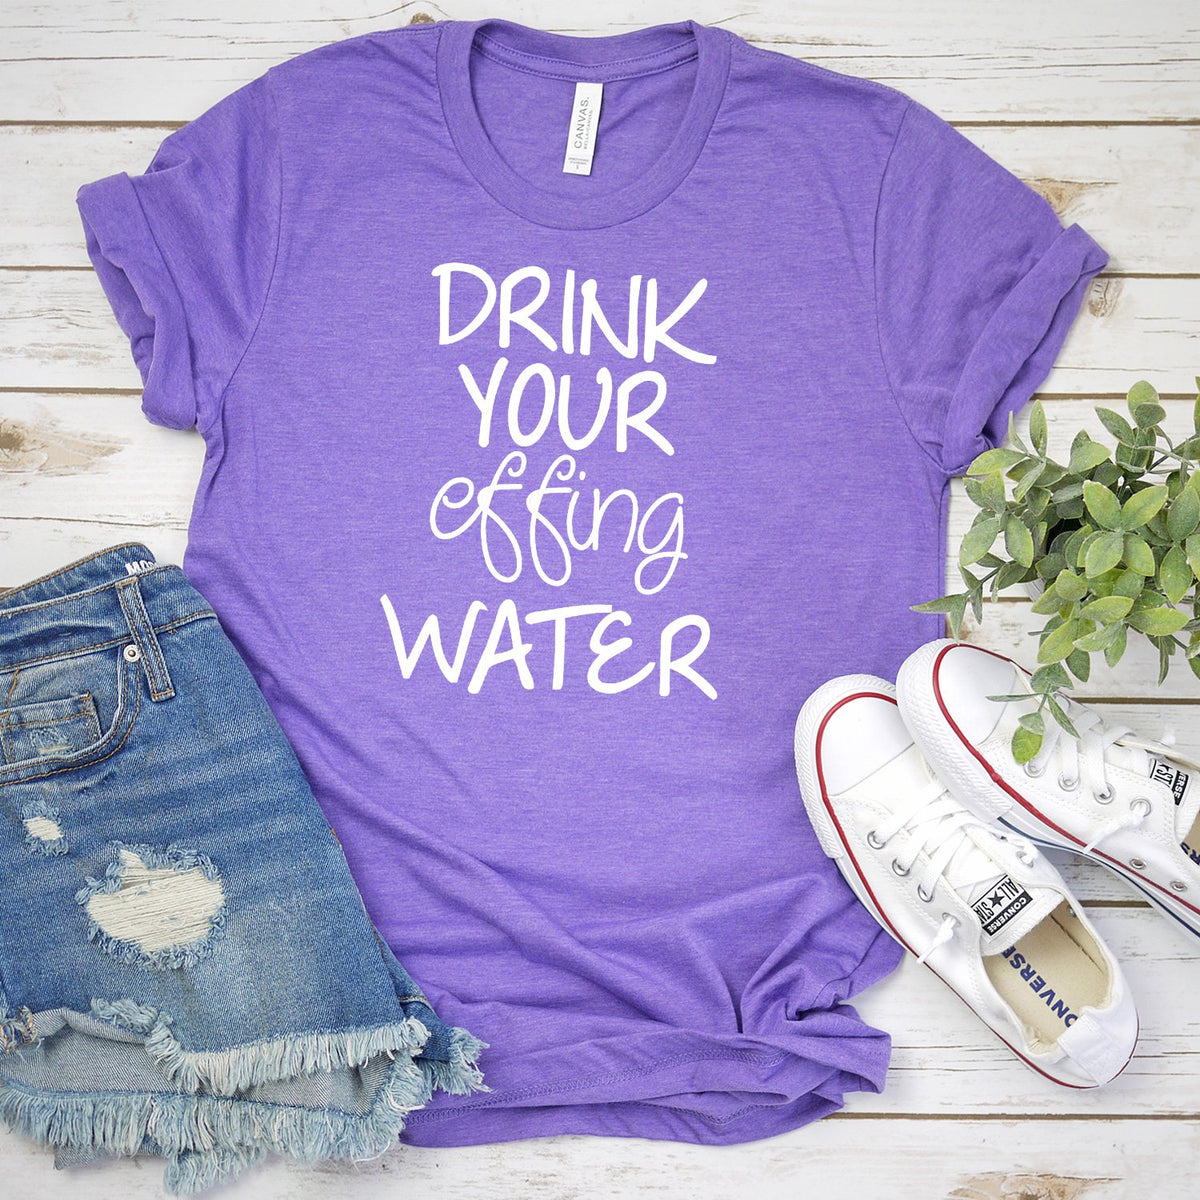 Drink Your Effing Water - Short Sleeve Tee Shirt